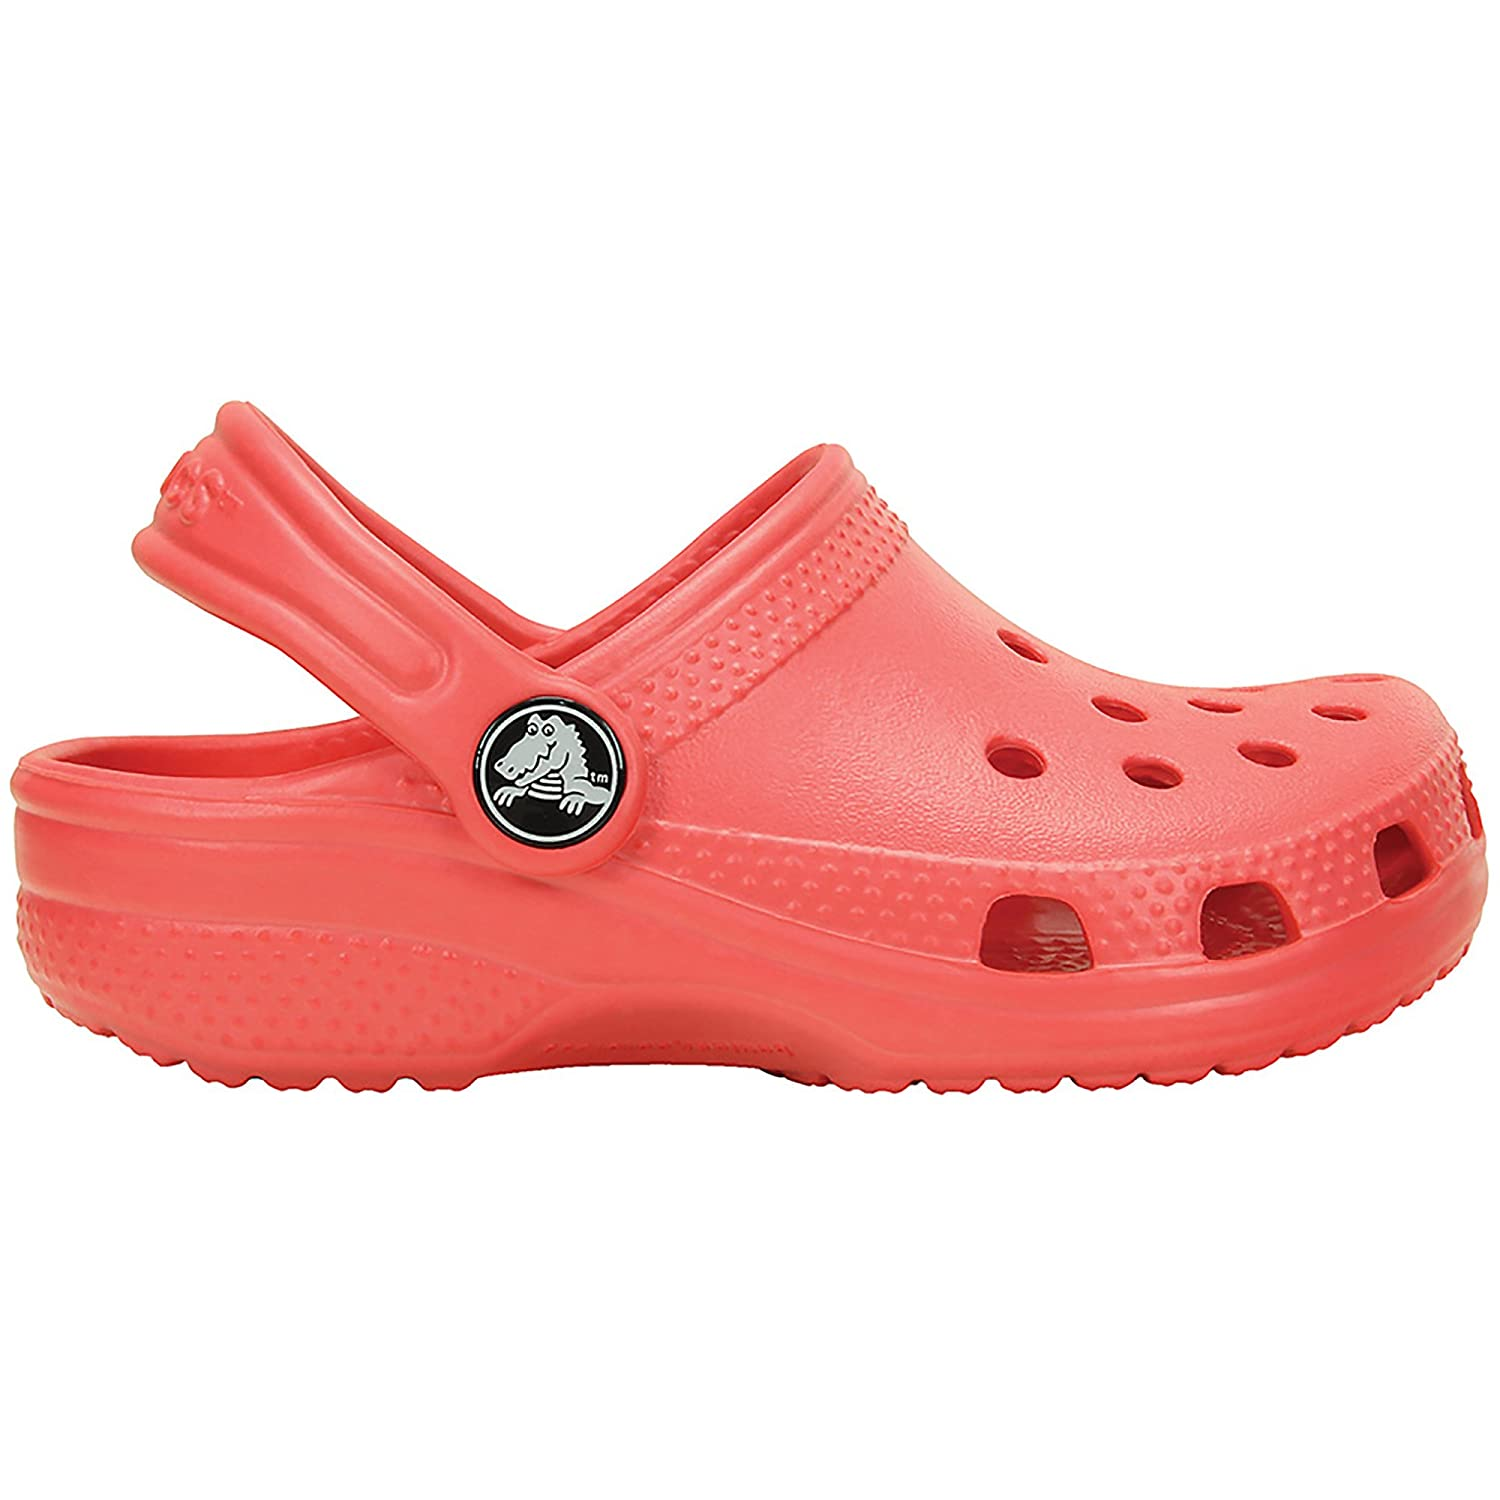 Crocs Childrens/Kids Classic Clogs